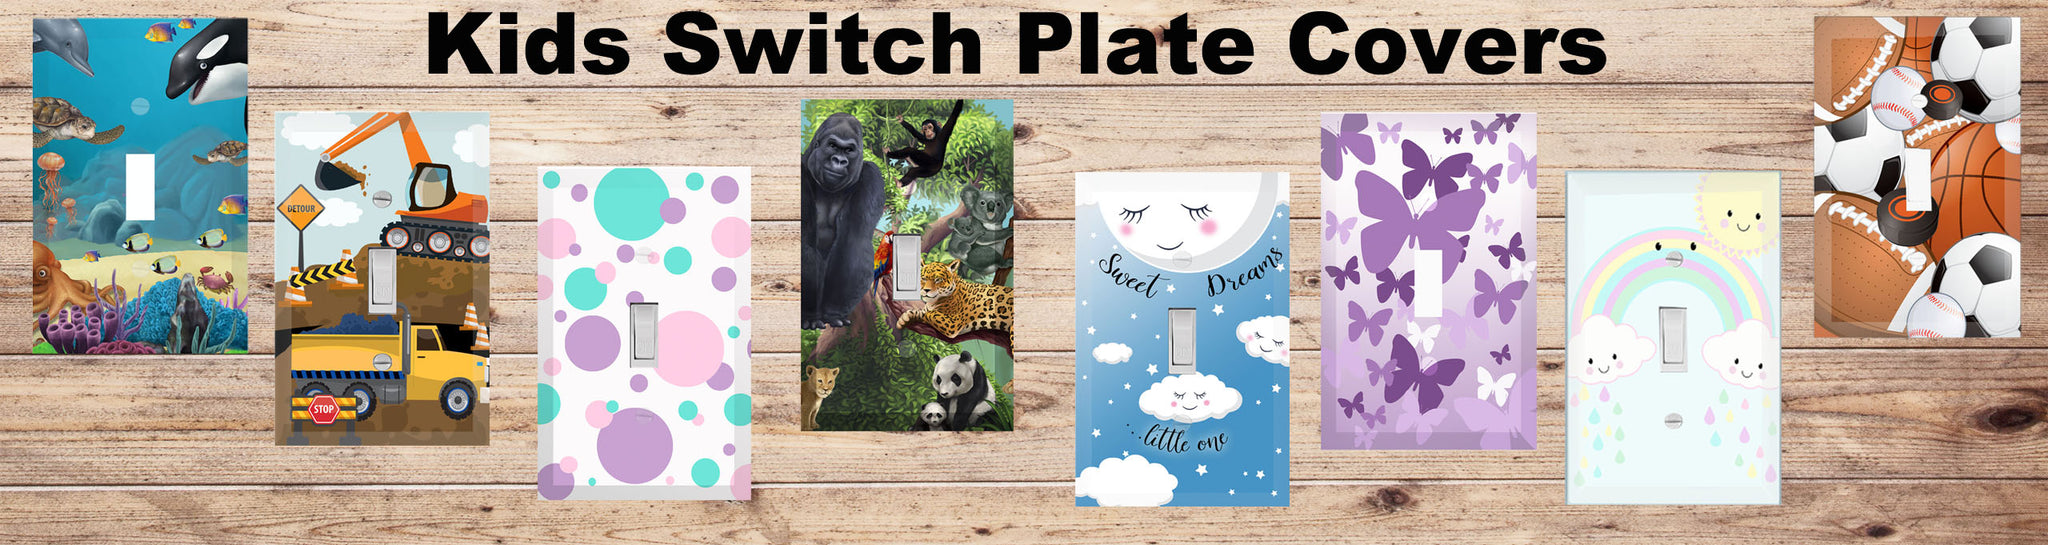 Kids Room Light Switch Covers